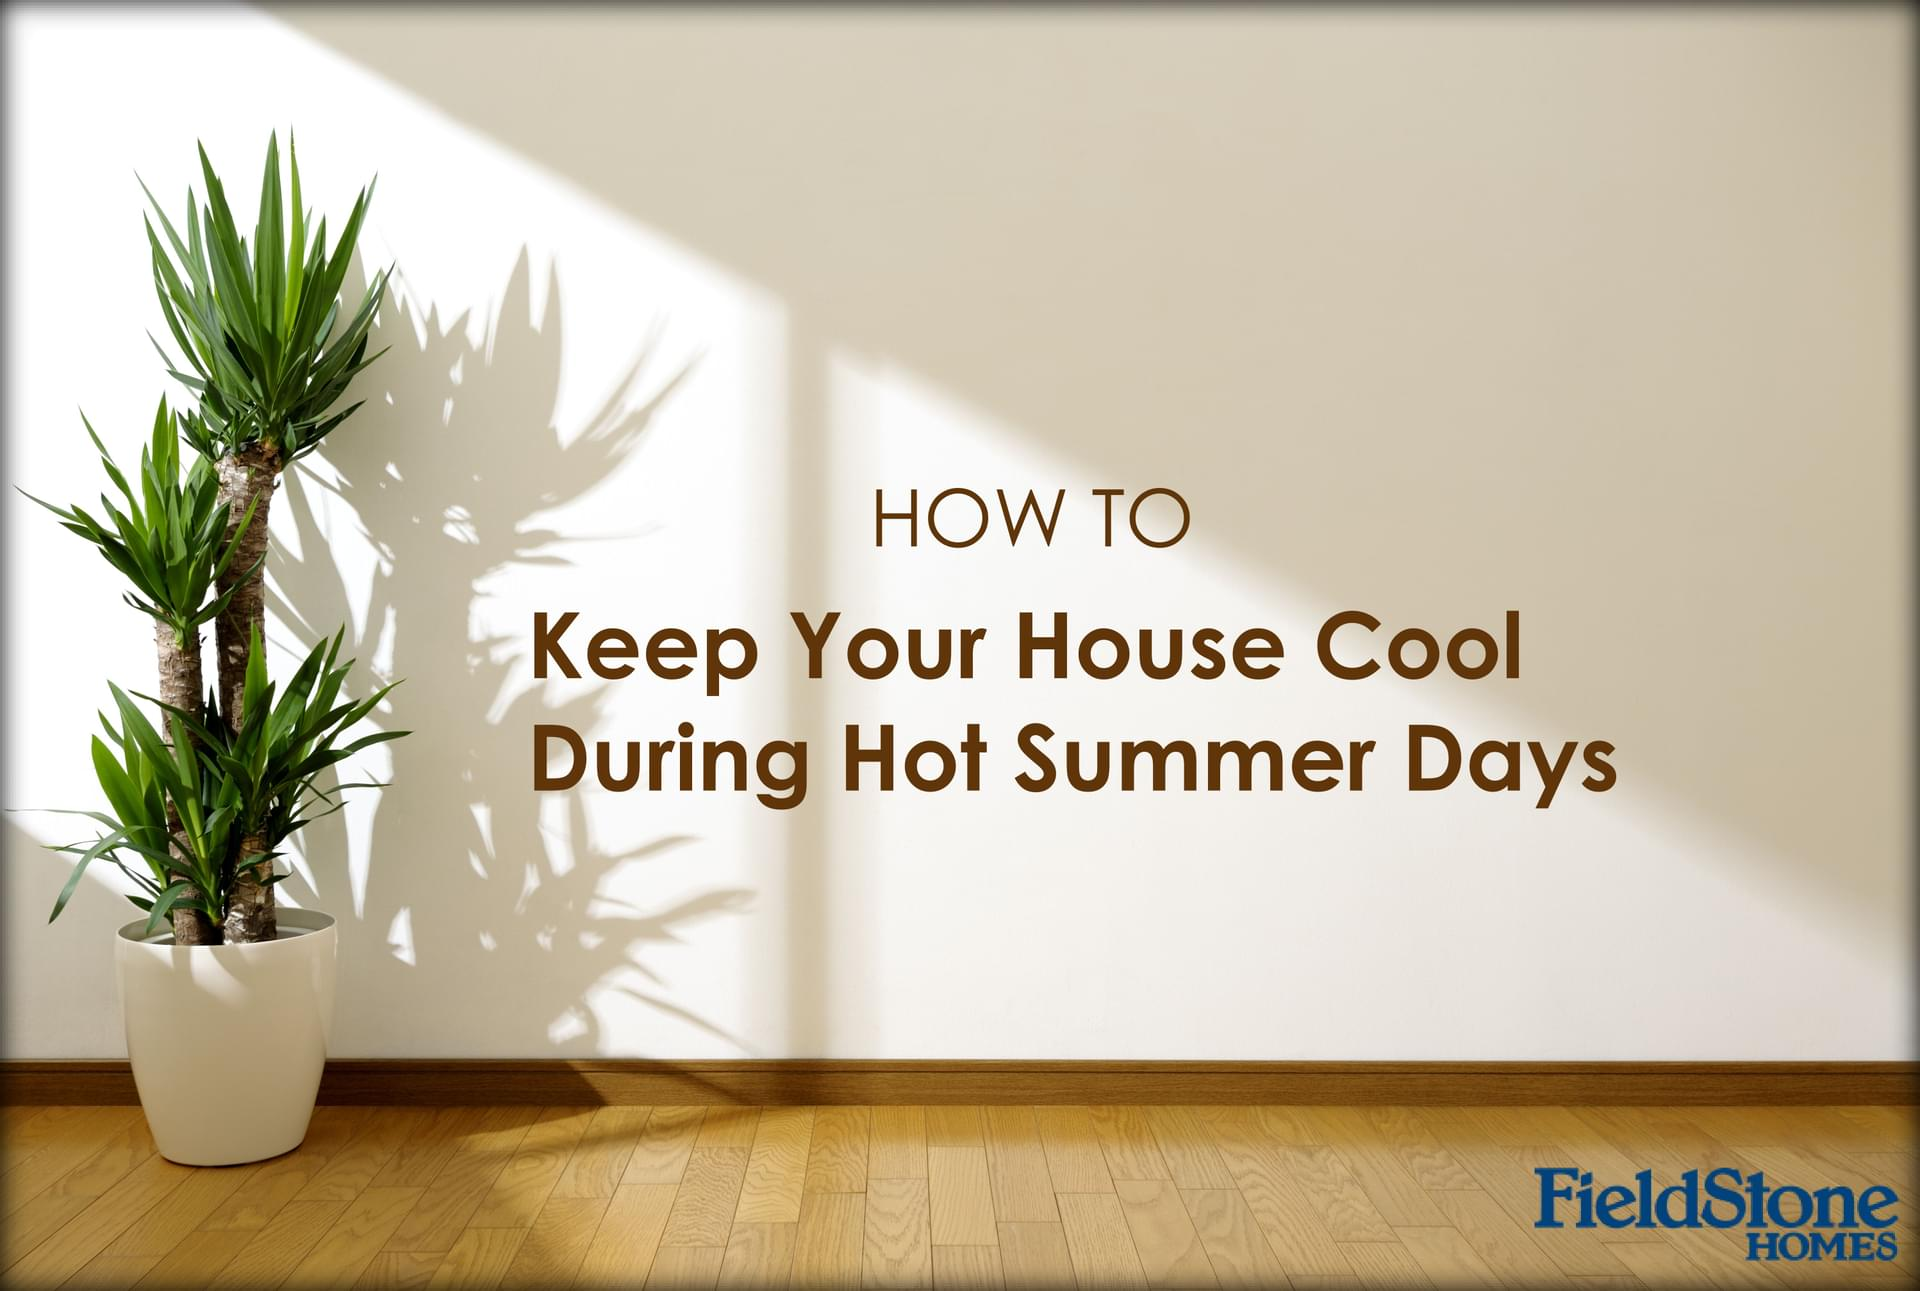 How To: Keep Your House Cool During Hot Summer Days